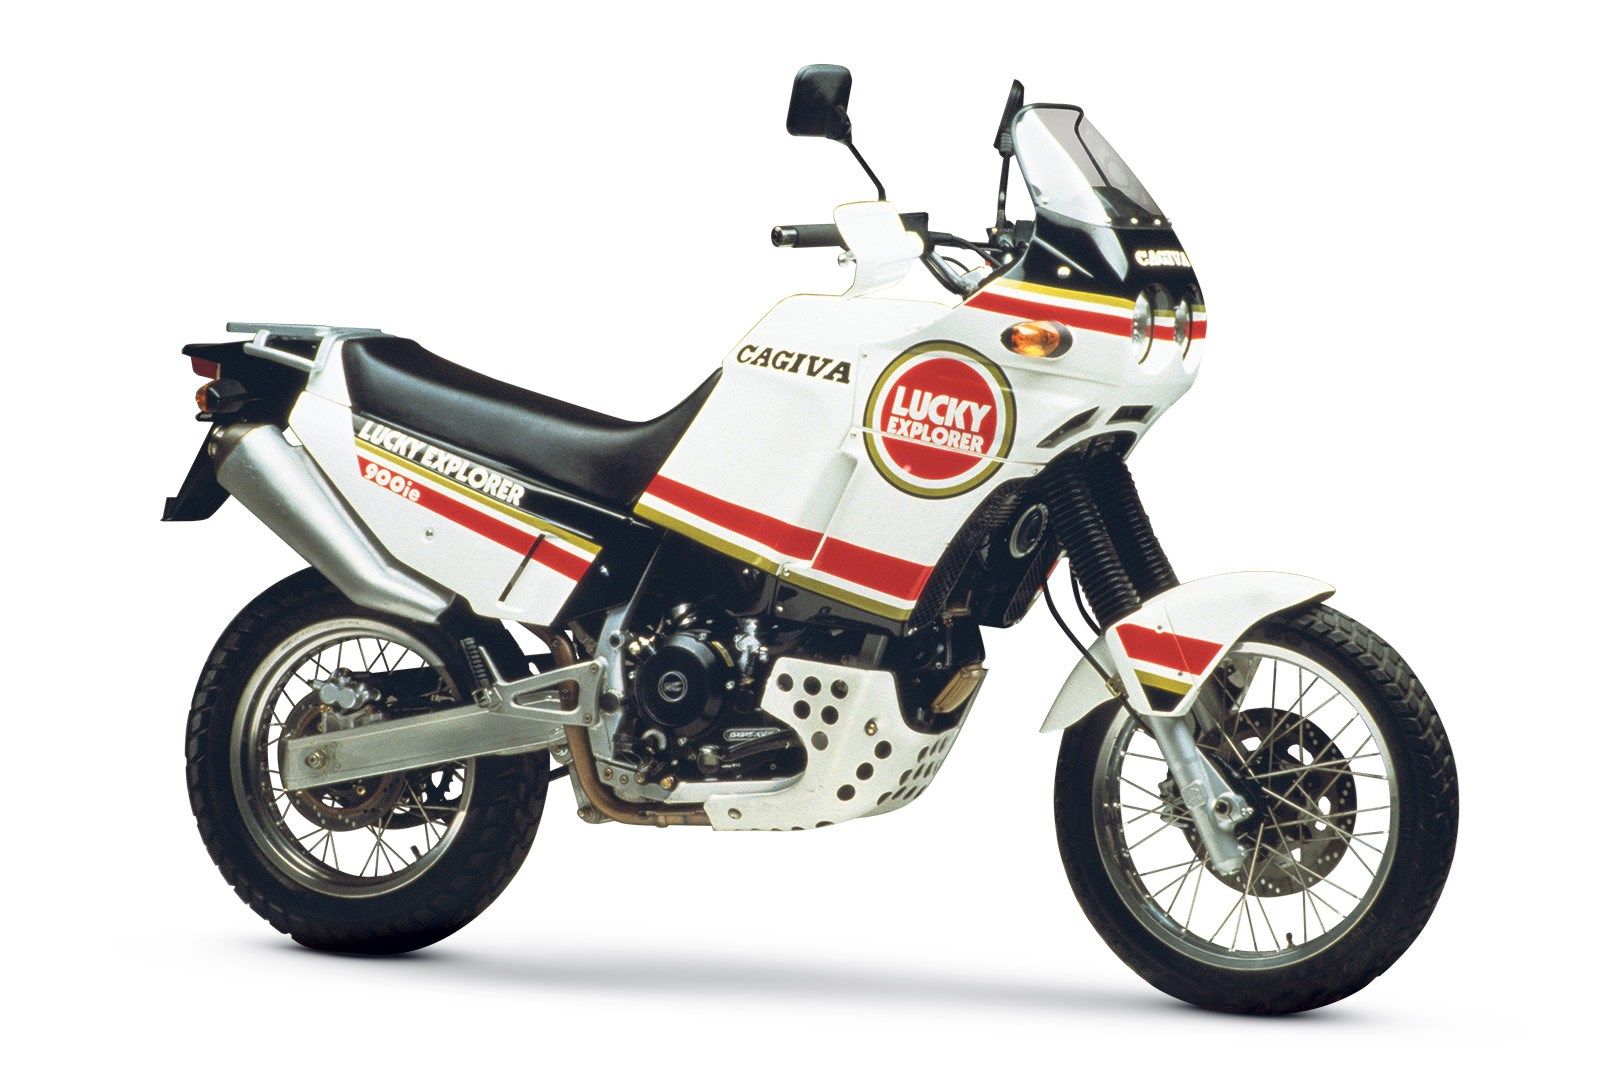 Cagiva Elefant 900 IE Lucky Strike images #69031